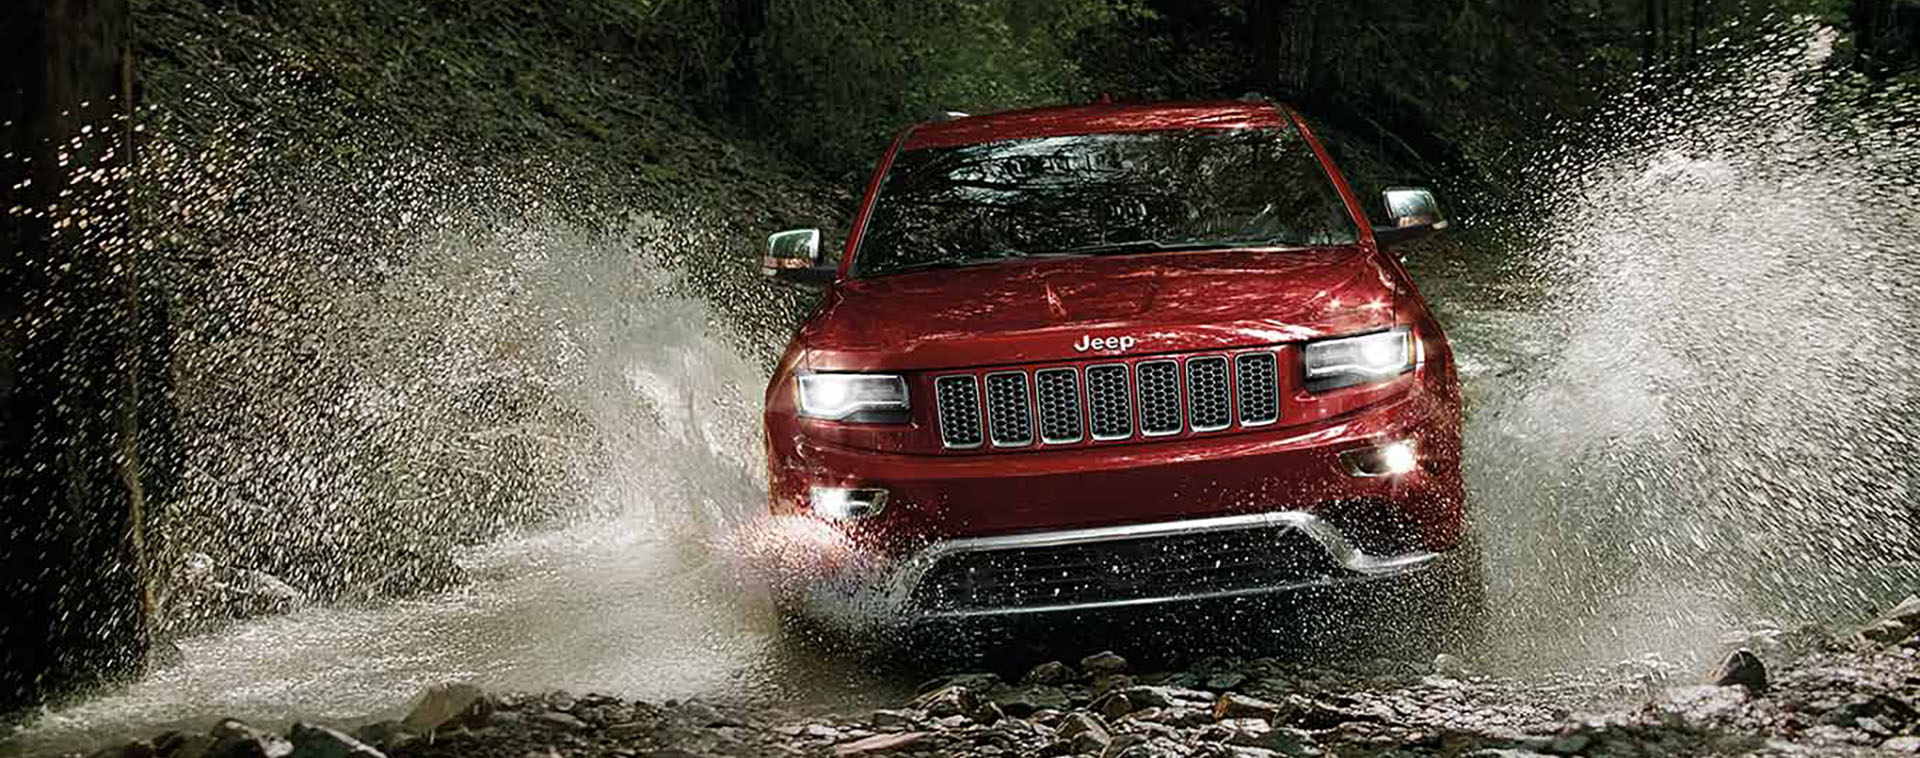 New Grand Cherokee inventory at Quirk Chrysler Jeep Dodge Ram